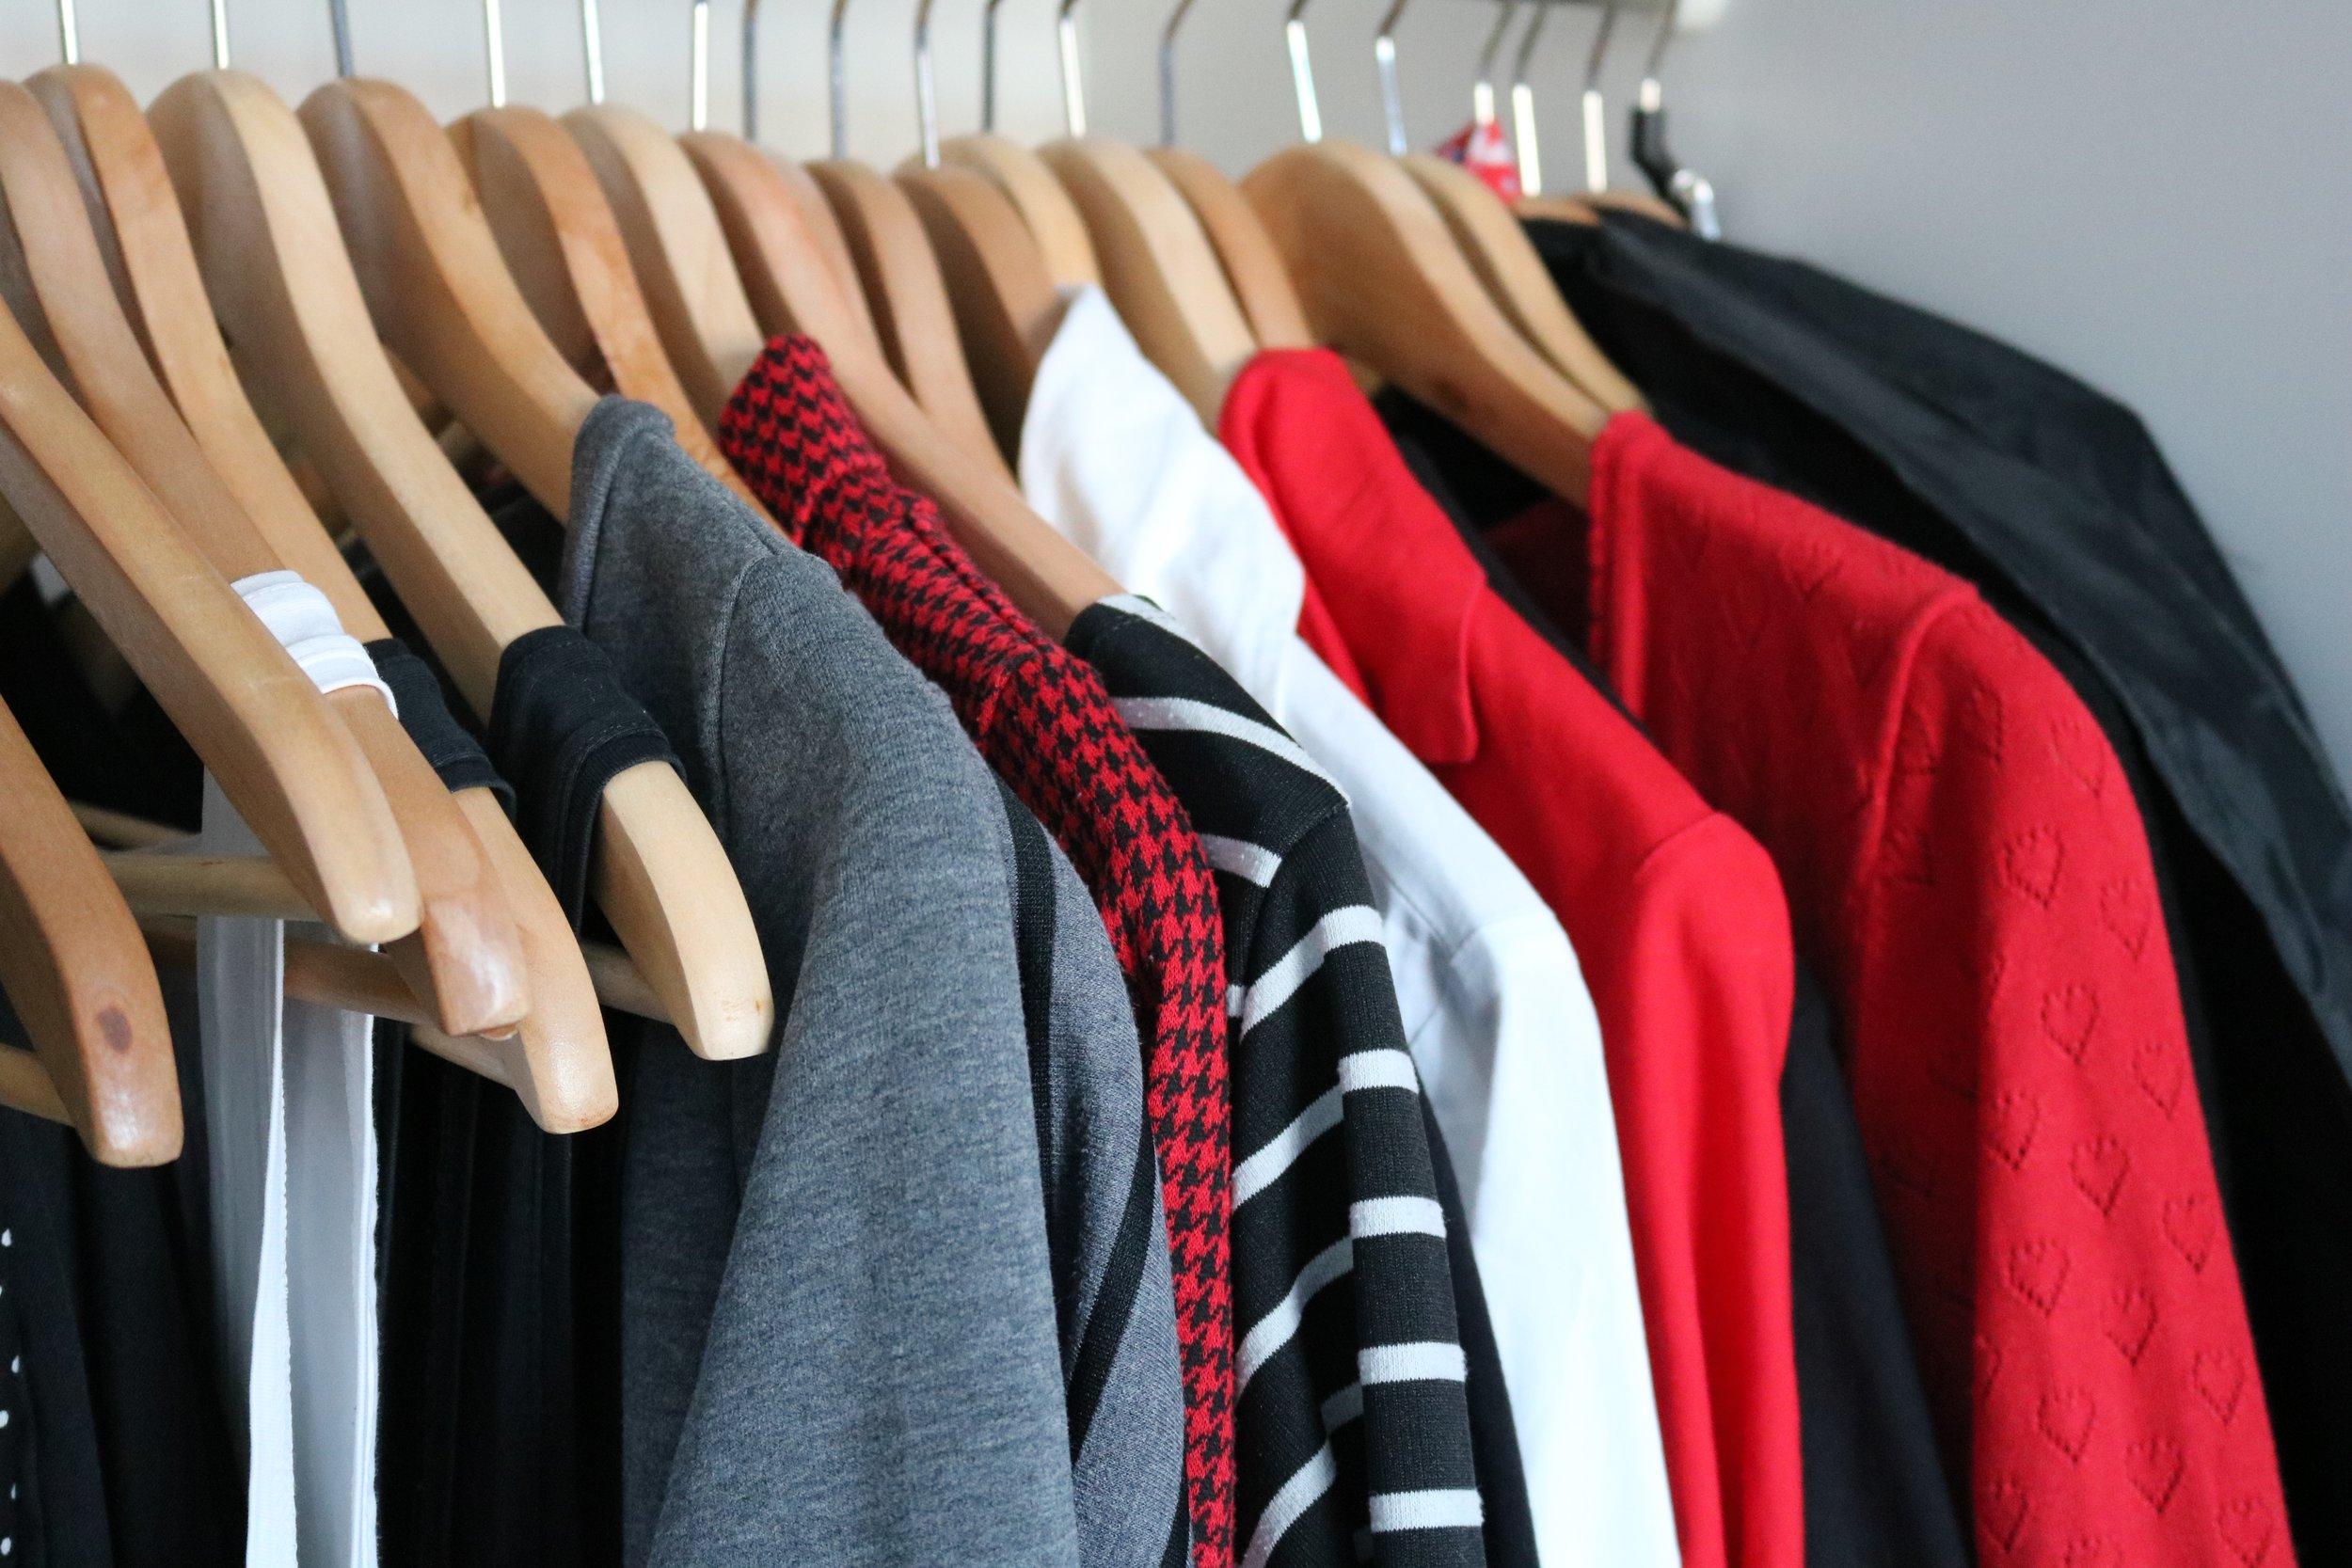 Over the past few years I had narrowed down my color choices for clothes to red, black, gray, and white.